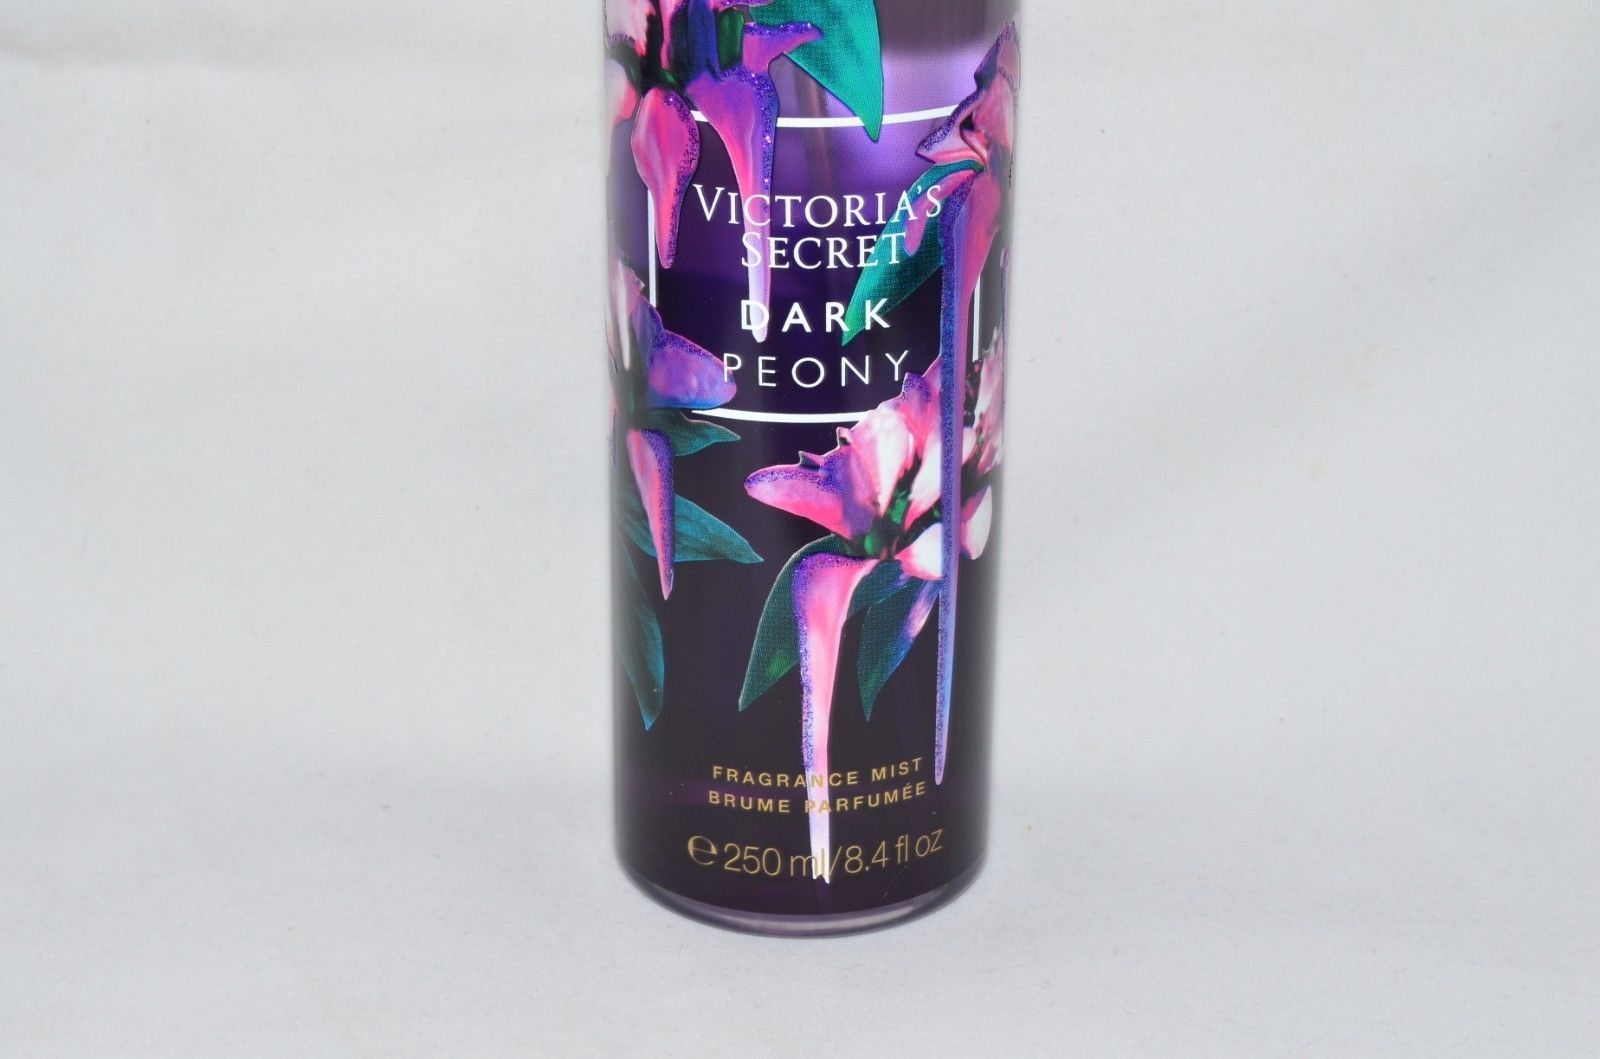 VICTORIA'S SECRET Midnight Blooms Dark Peony Fragrance Body Mist 8.4Oz NEW